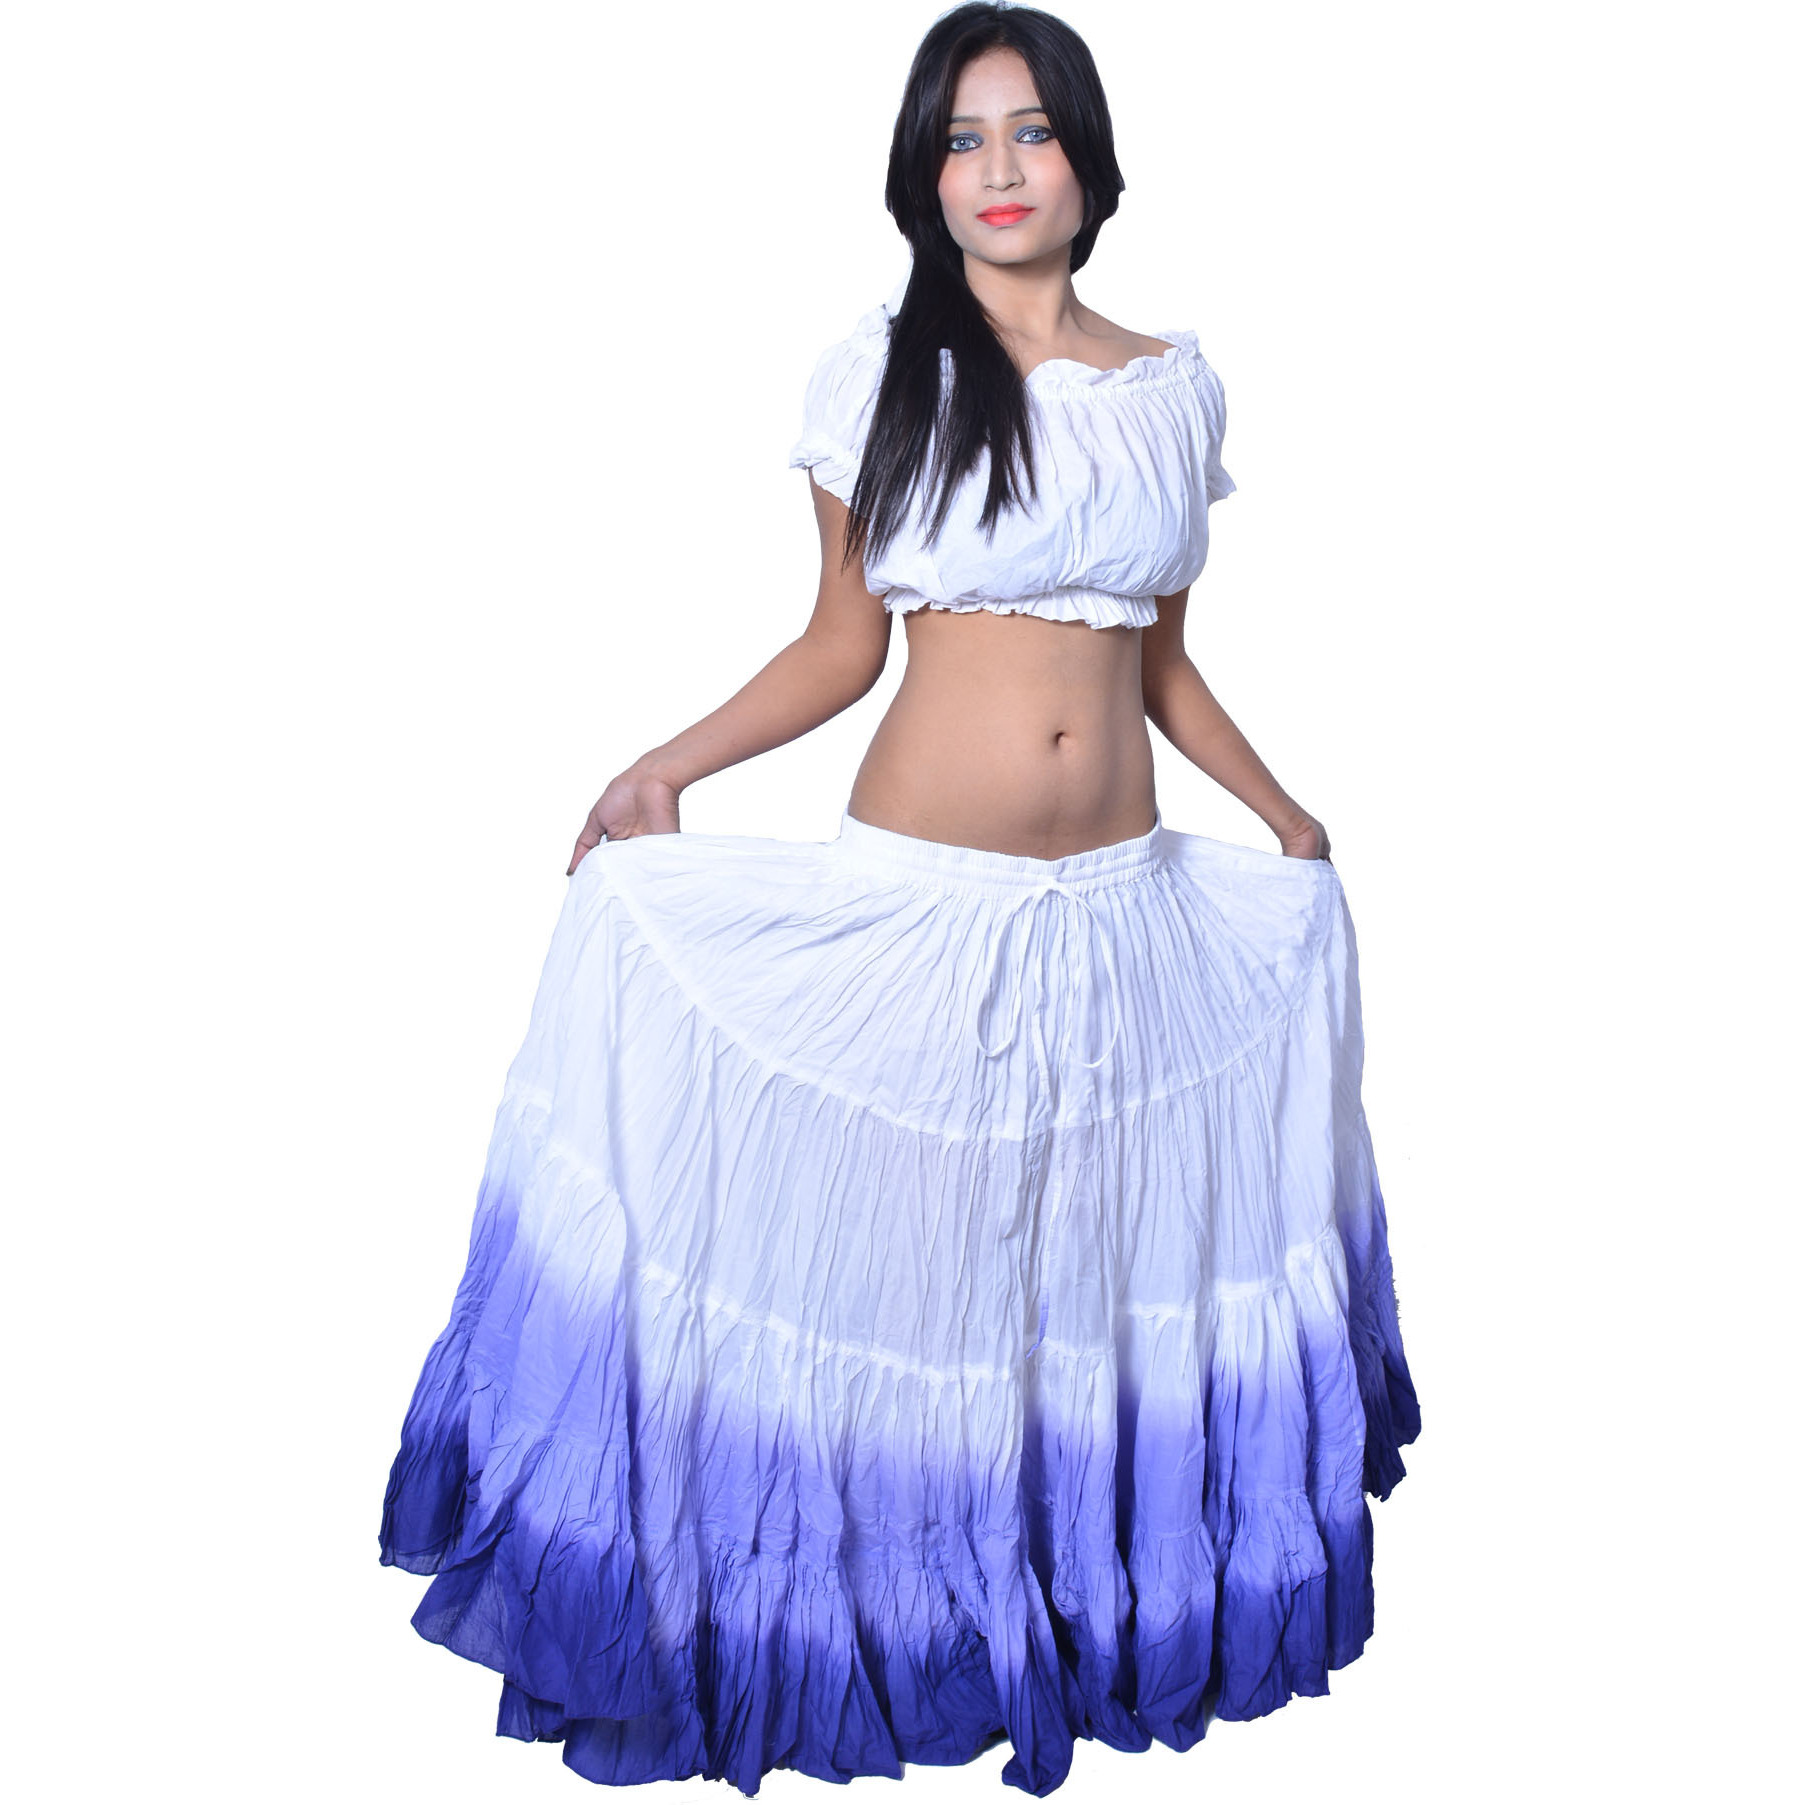 Wevez Women's ATS Tribal Dip Dye 25 Yard Skirt, One Size, White/Purple